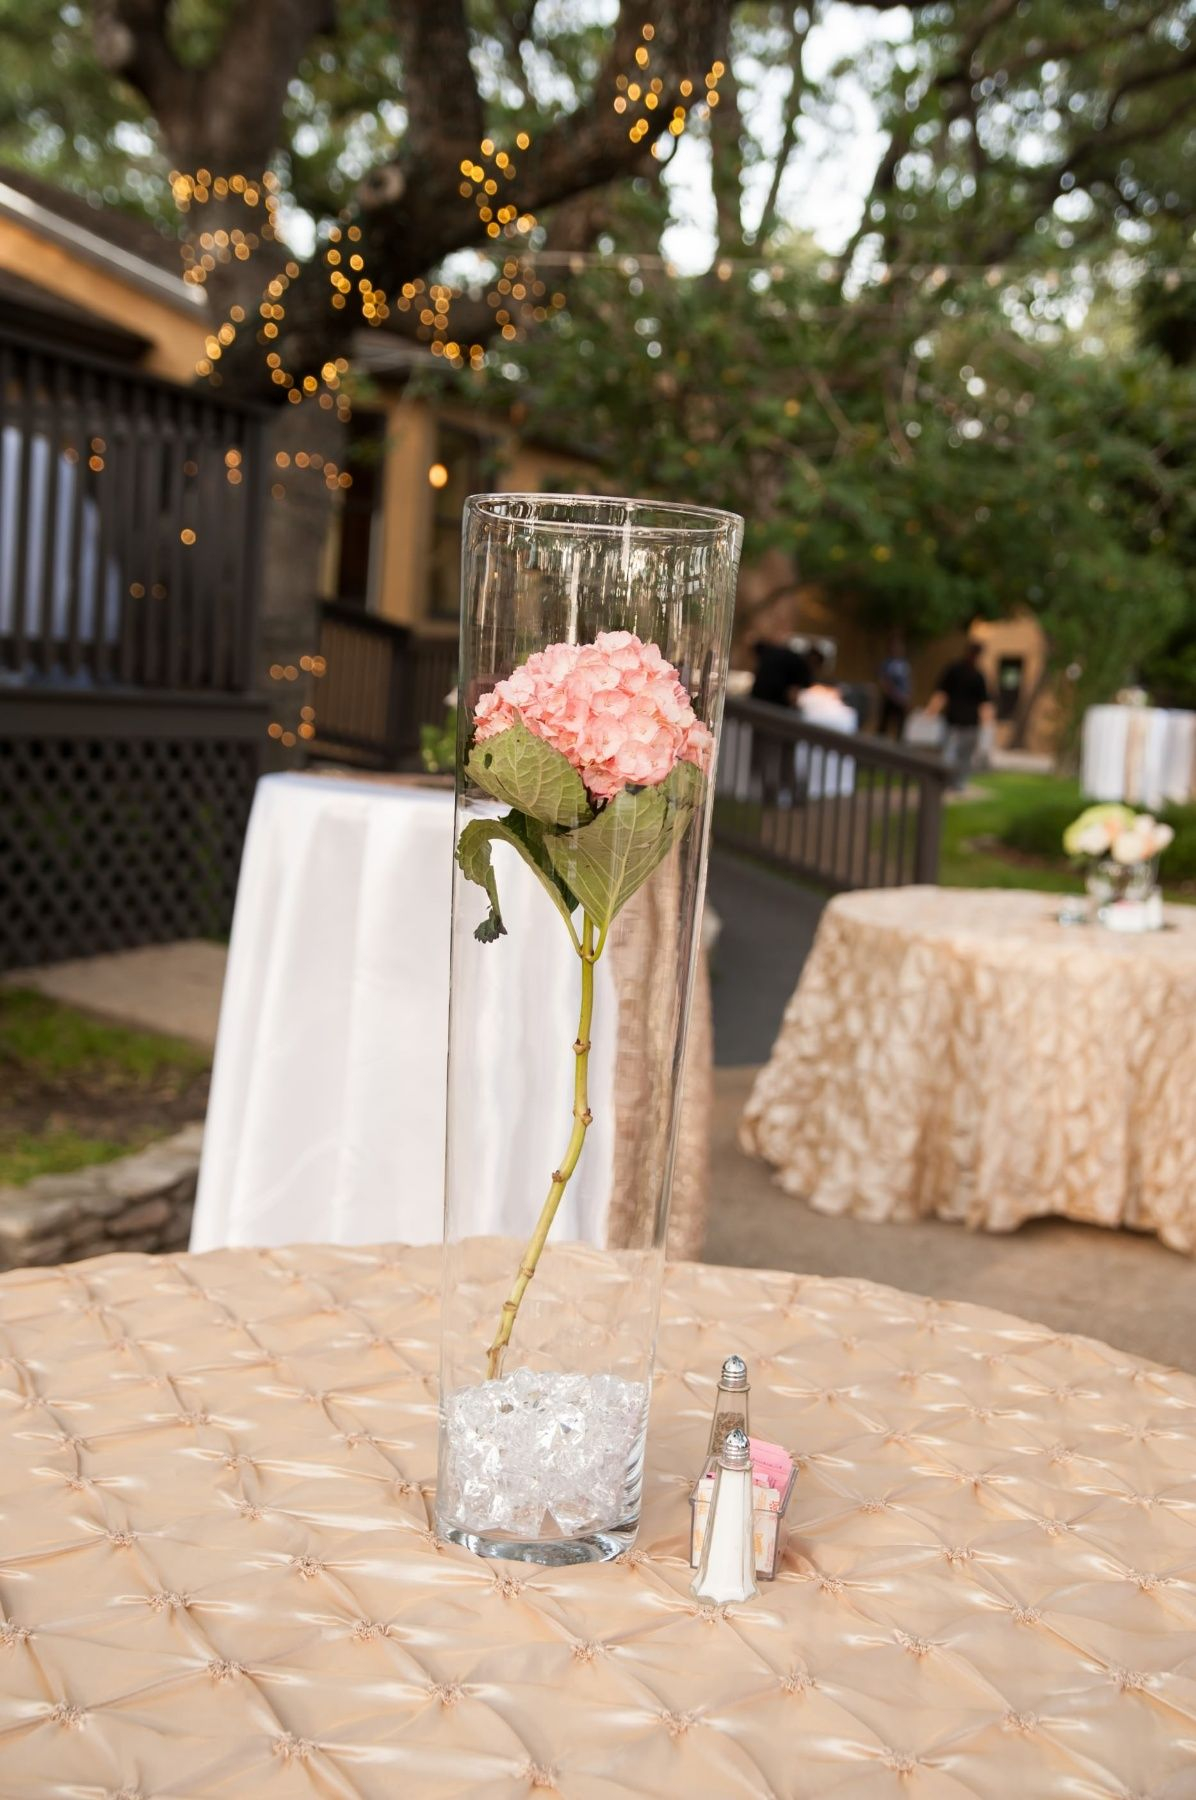 Easy way to decorate when you have over 30 tables and still have that elegant effect at night the crystals beam with beautiful pink colors .